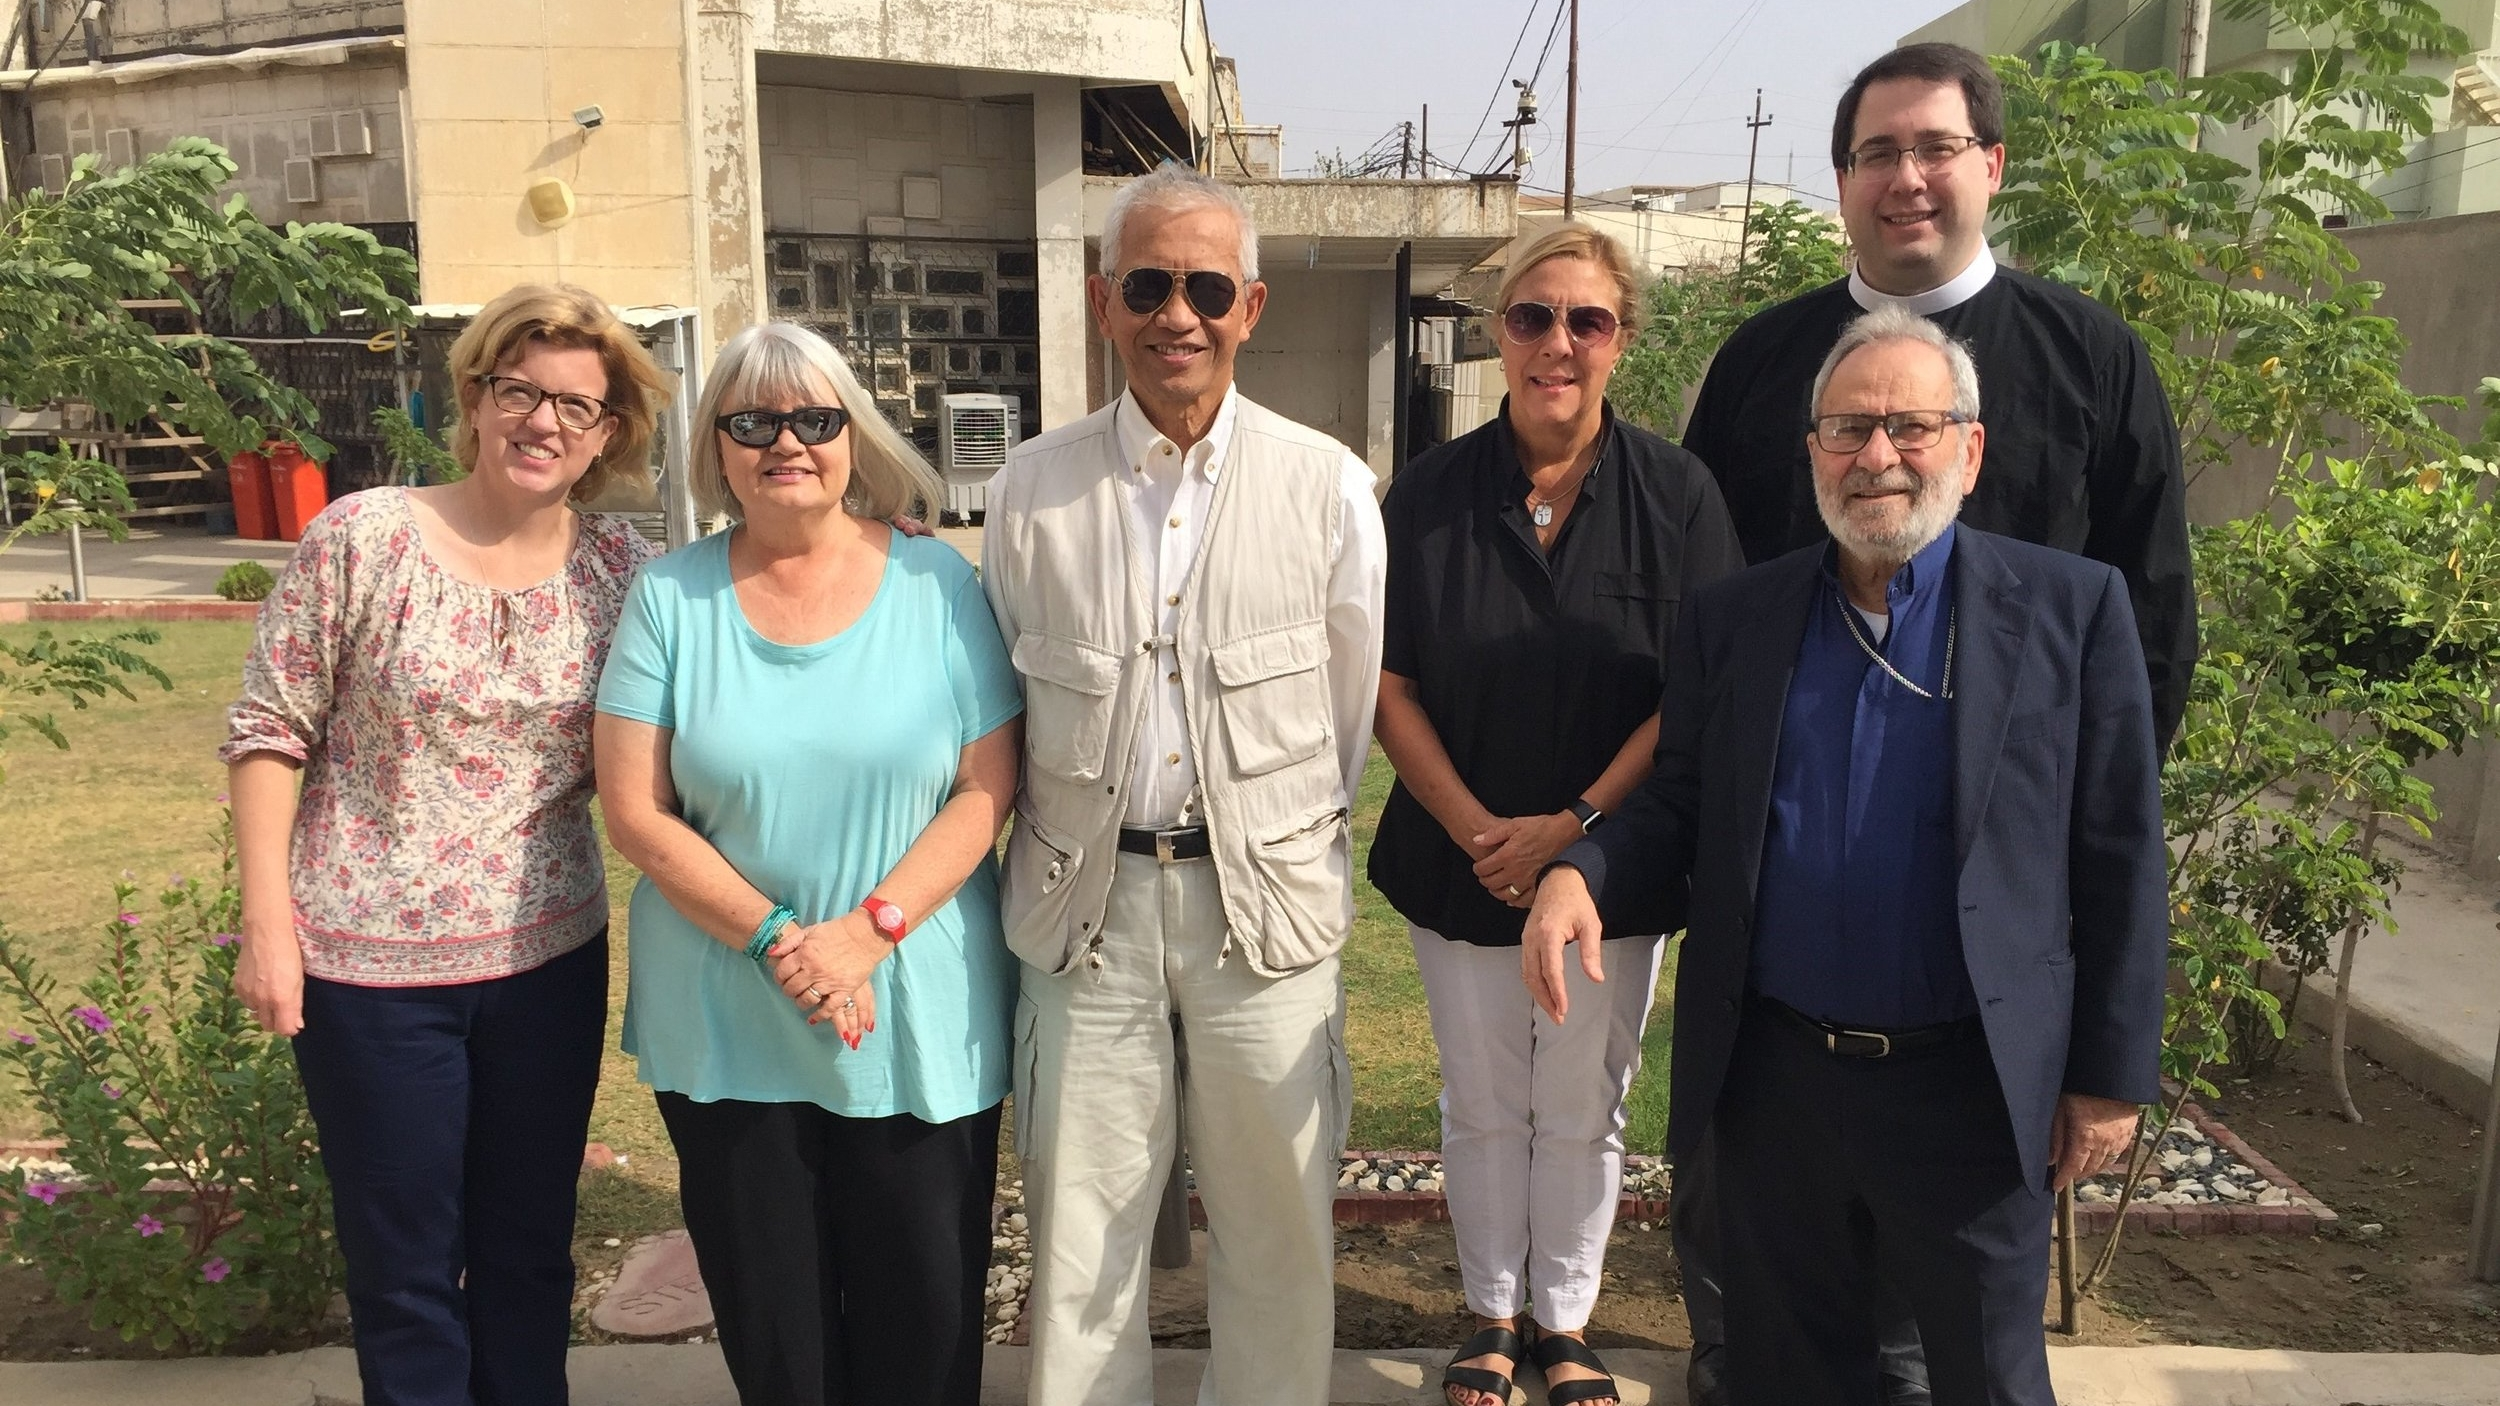 Outreach team at Kirkuk Church, l to r, Gretchen Tilly, Marilyn Borst, Sichan Siv, Ginny Teitt, Tony Lorenz  and Nuhad Tomeh in front